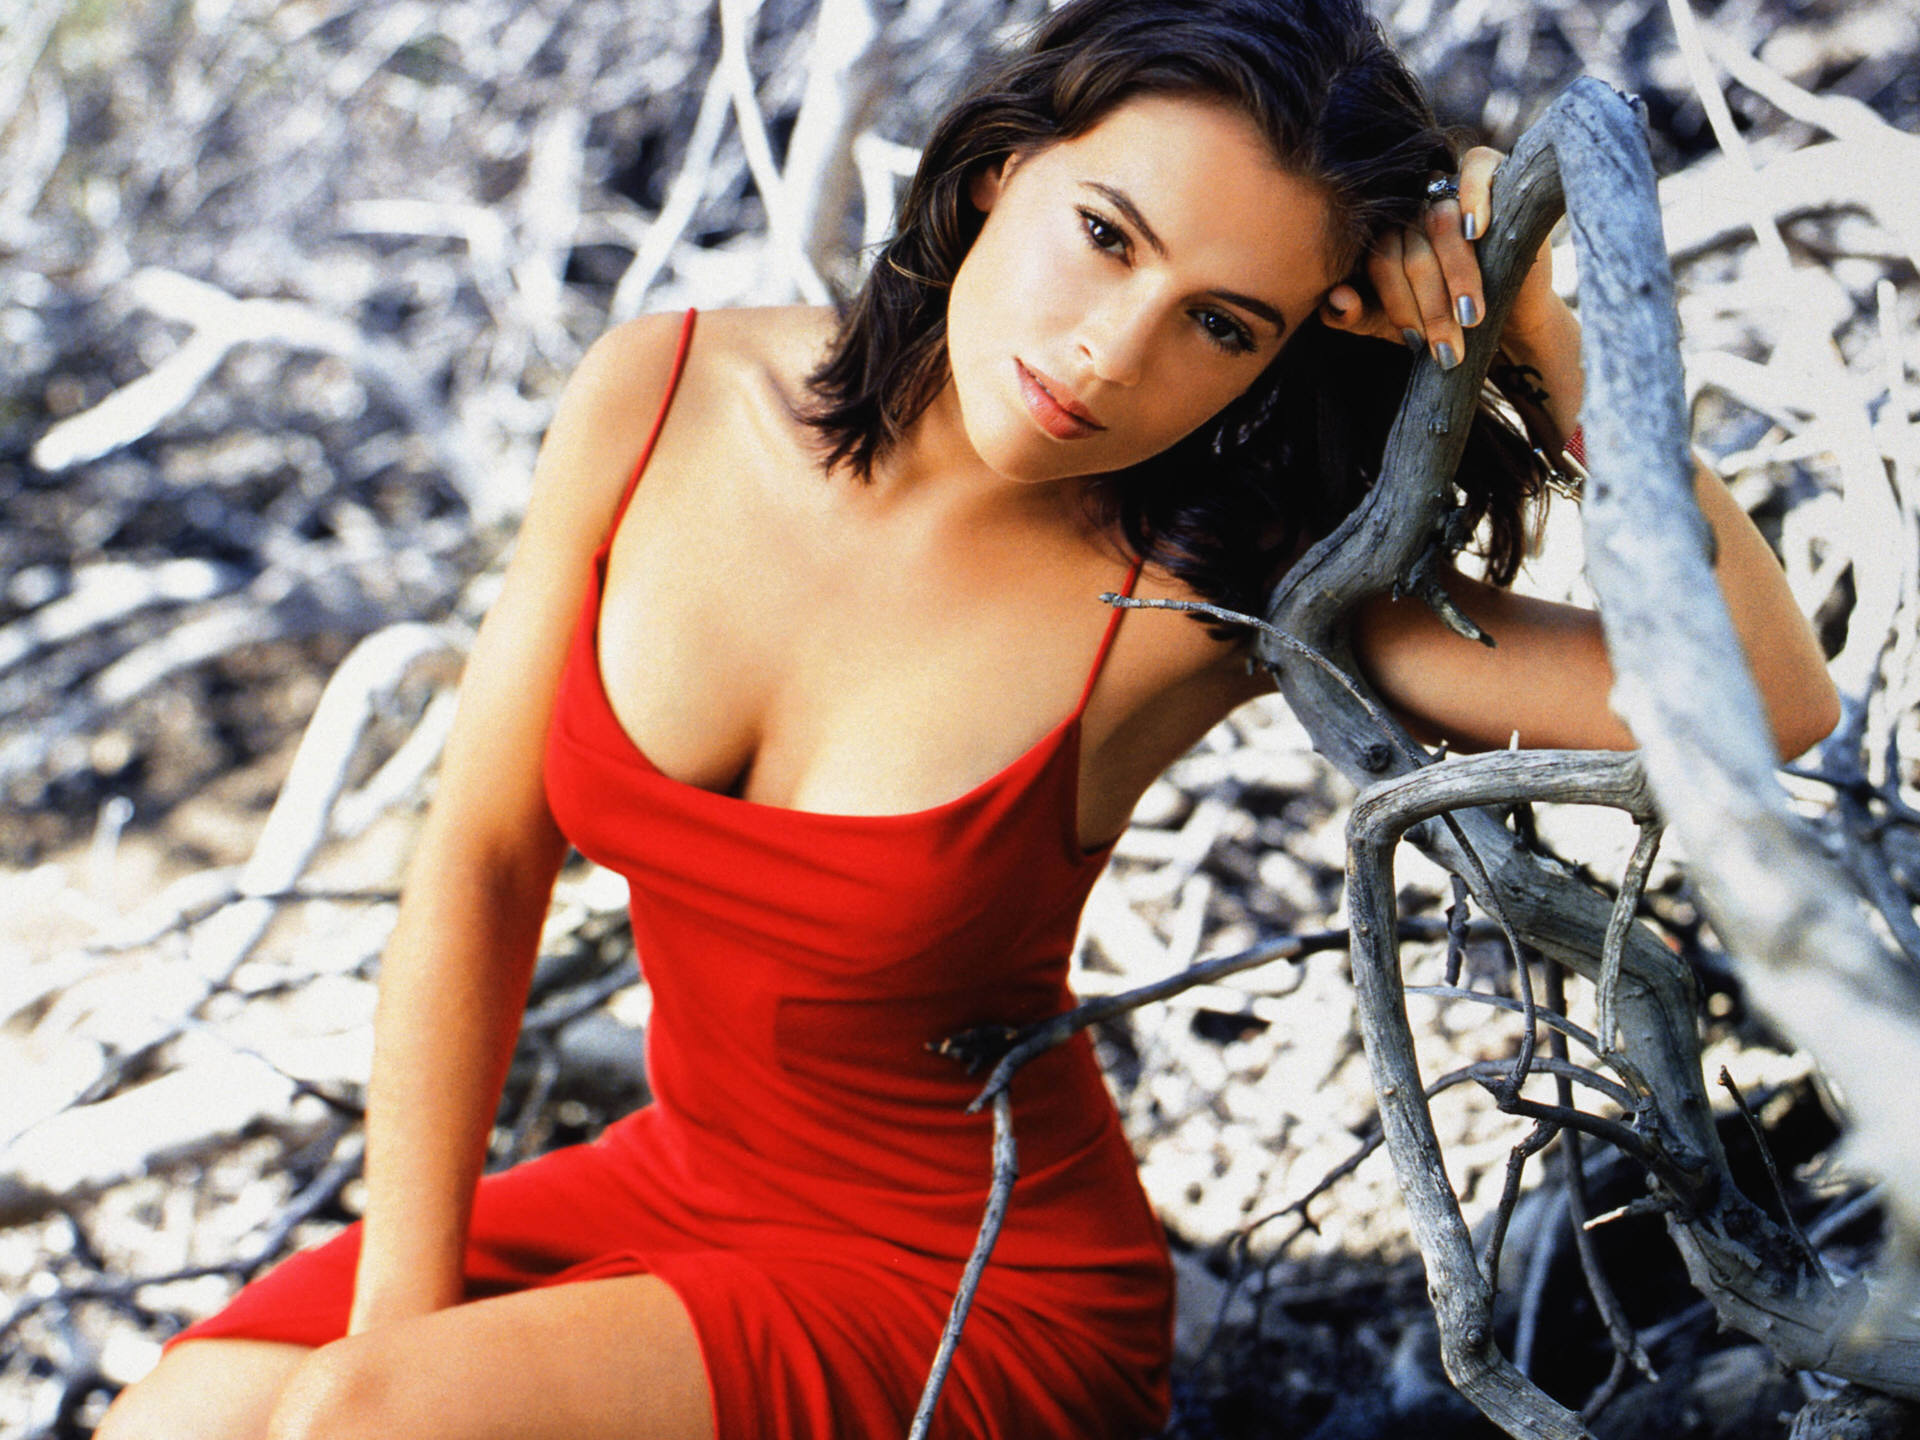 charmed-alyssa-milano-sexy-in-red-dress-hd-404898.jpg (1920×1440)